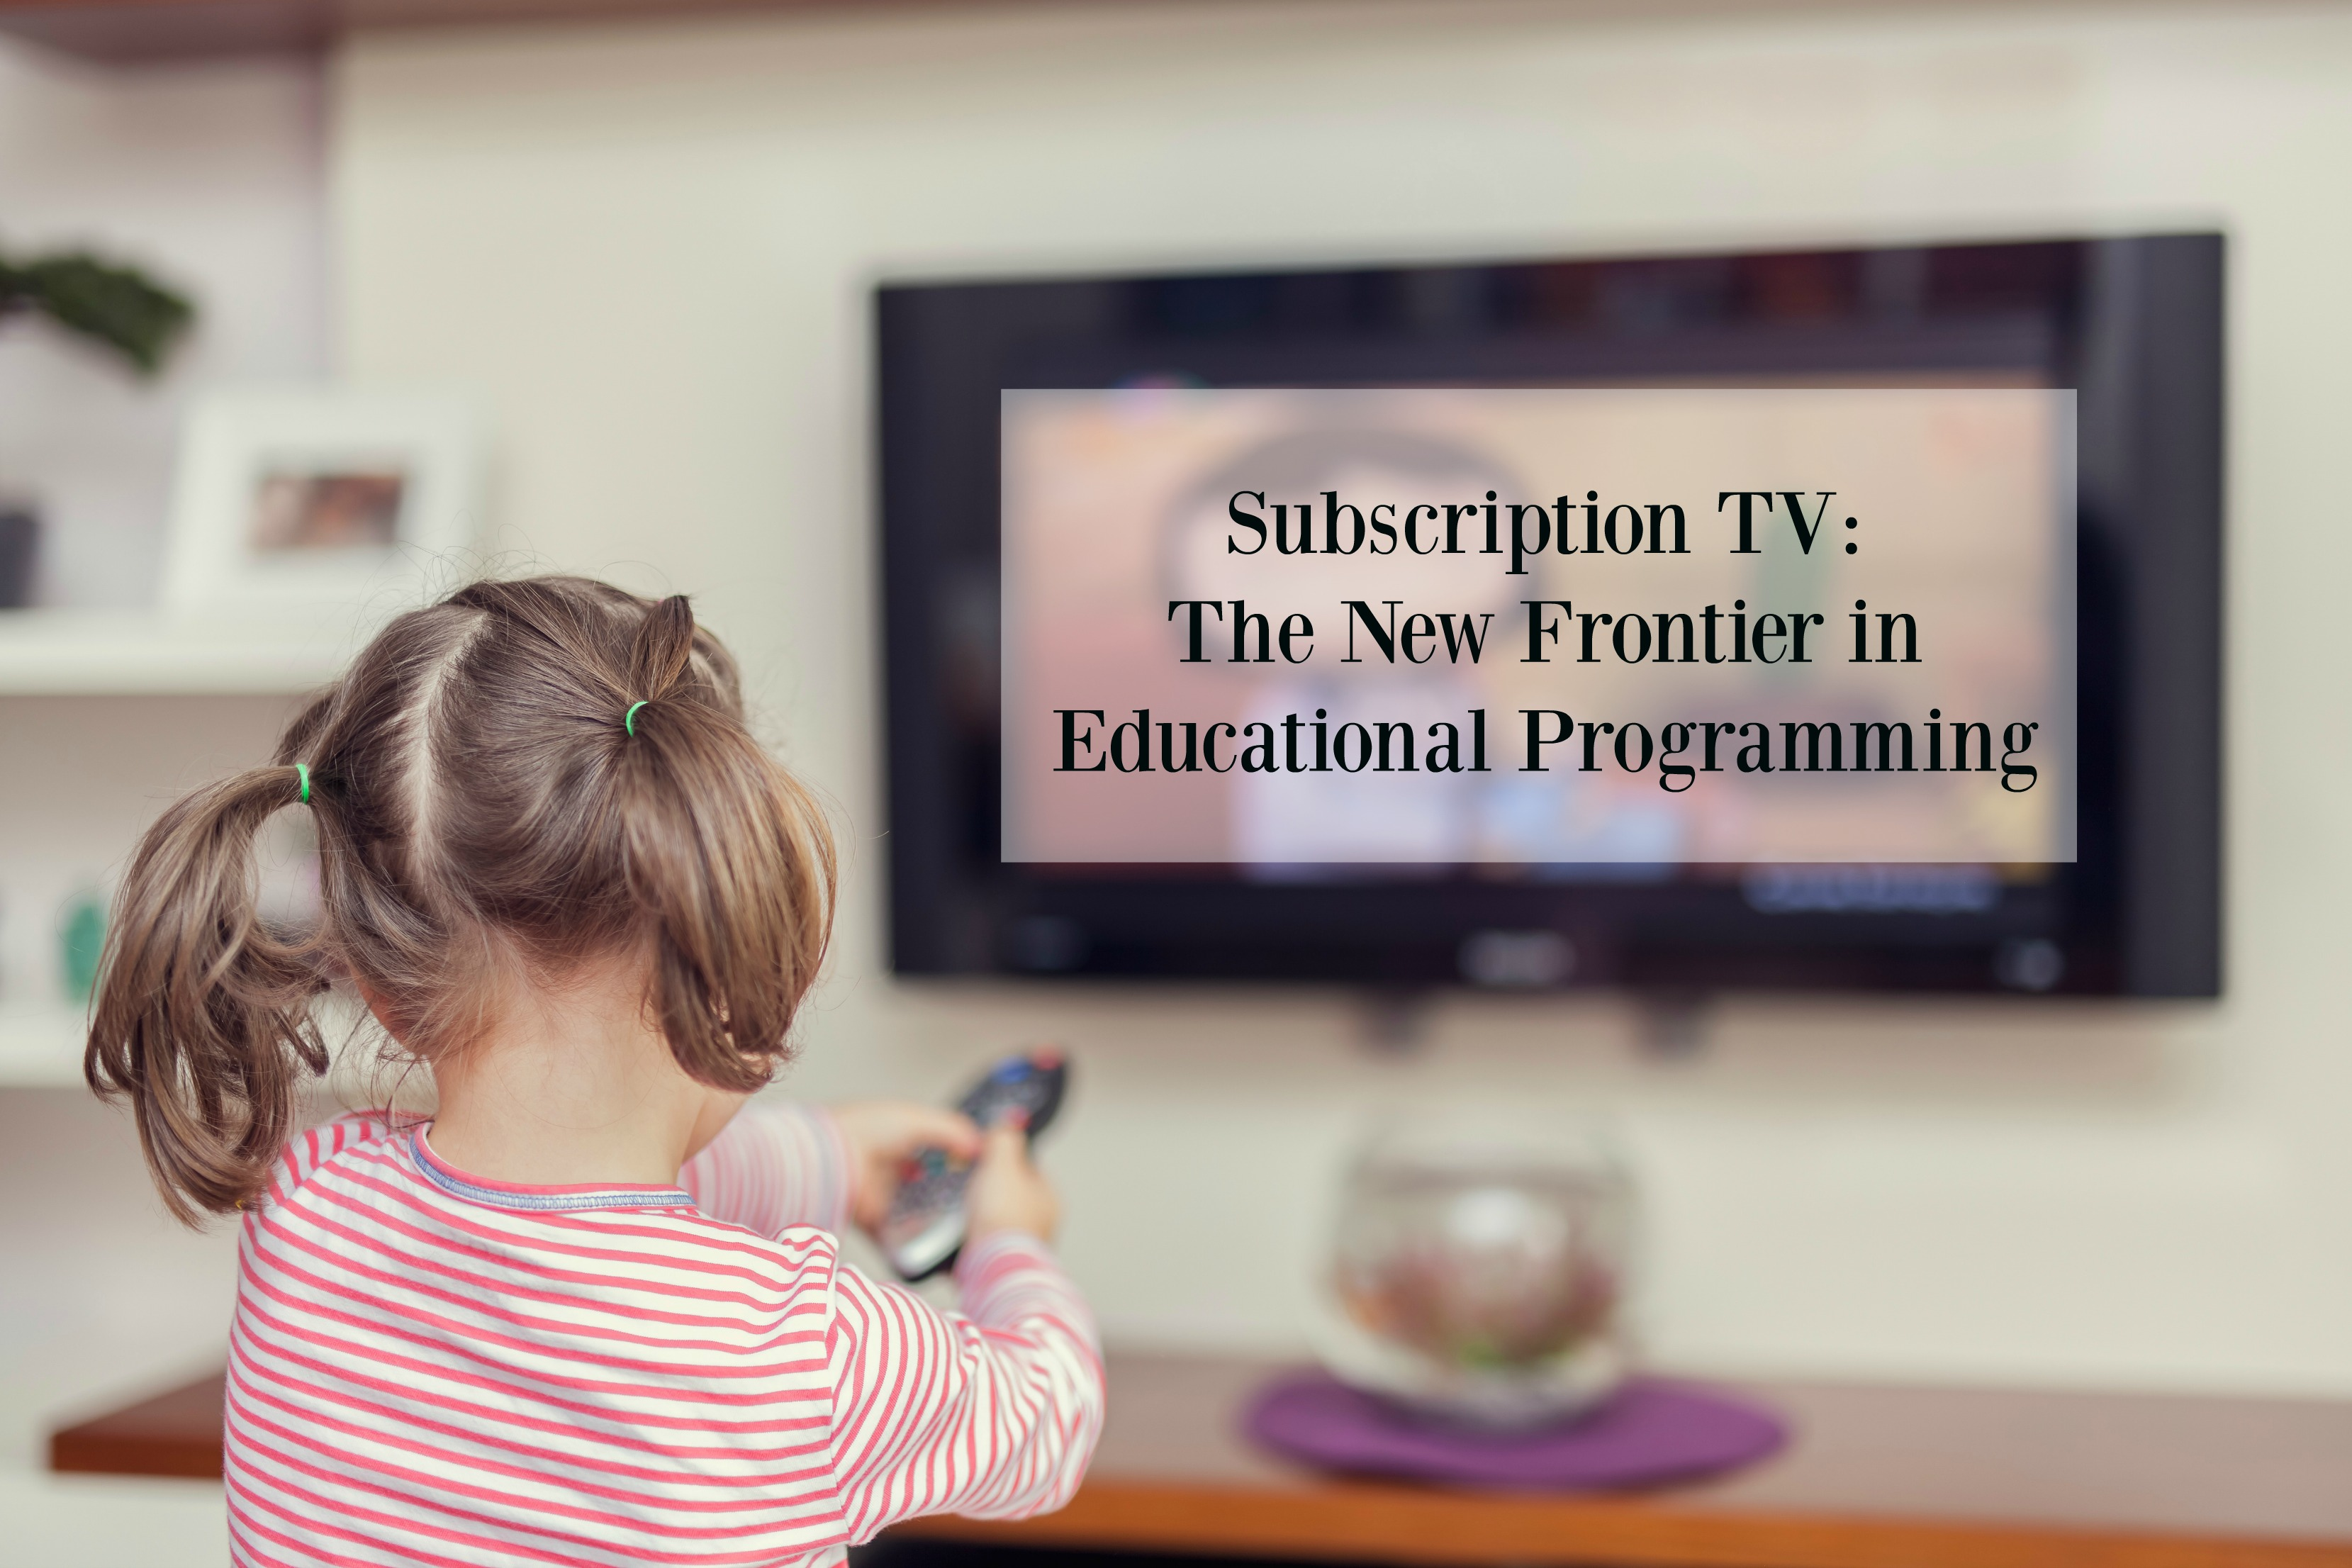 Subscription TV The New Frontier in Educational Programming